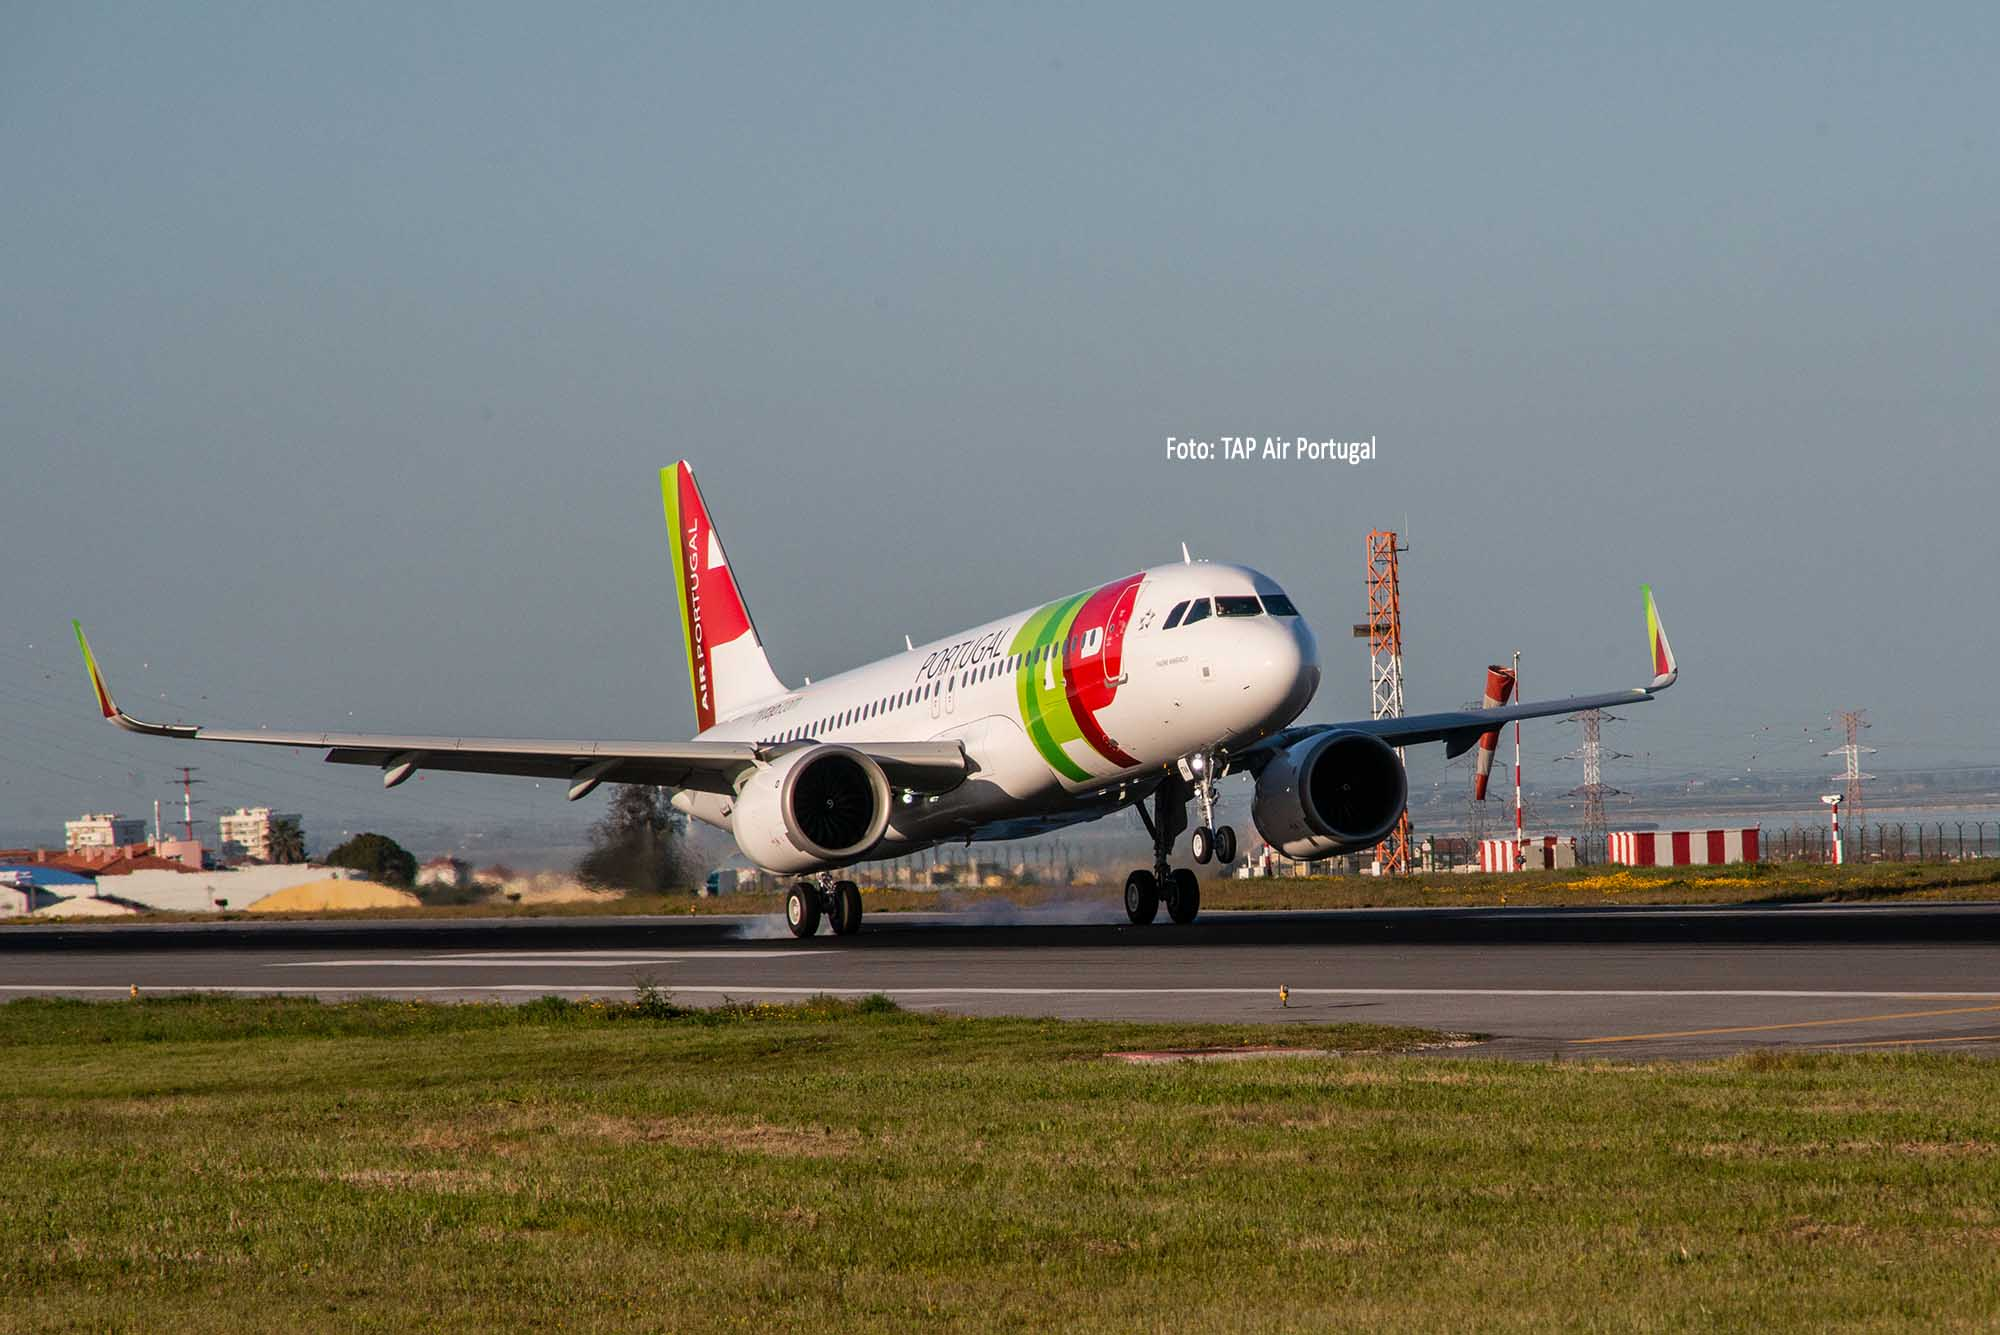 Am 18. April 2018 erhielt TAP Air Portugal die erste Maschine vom Typ A320neo. Foto: TAP Air Portugal